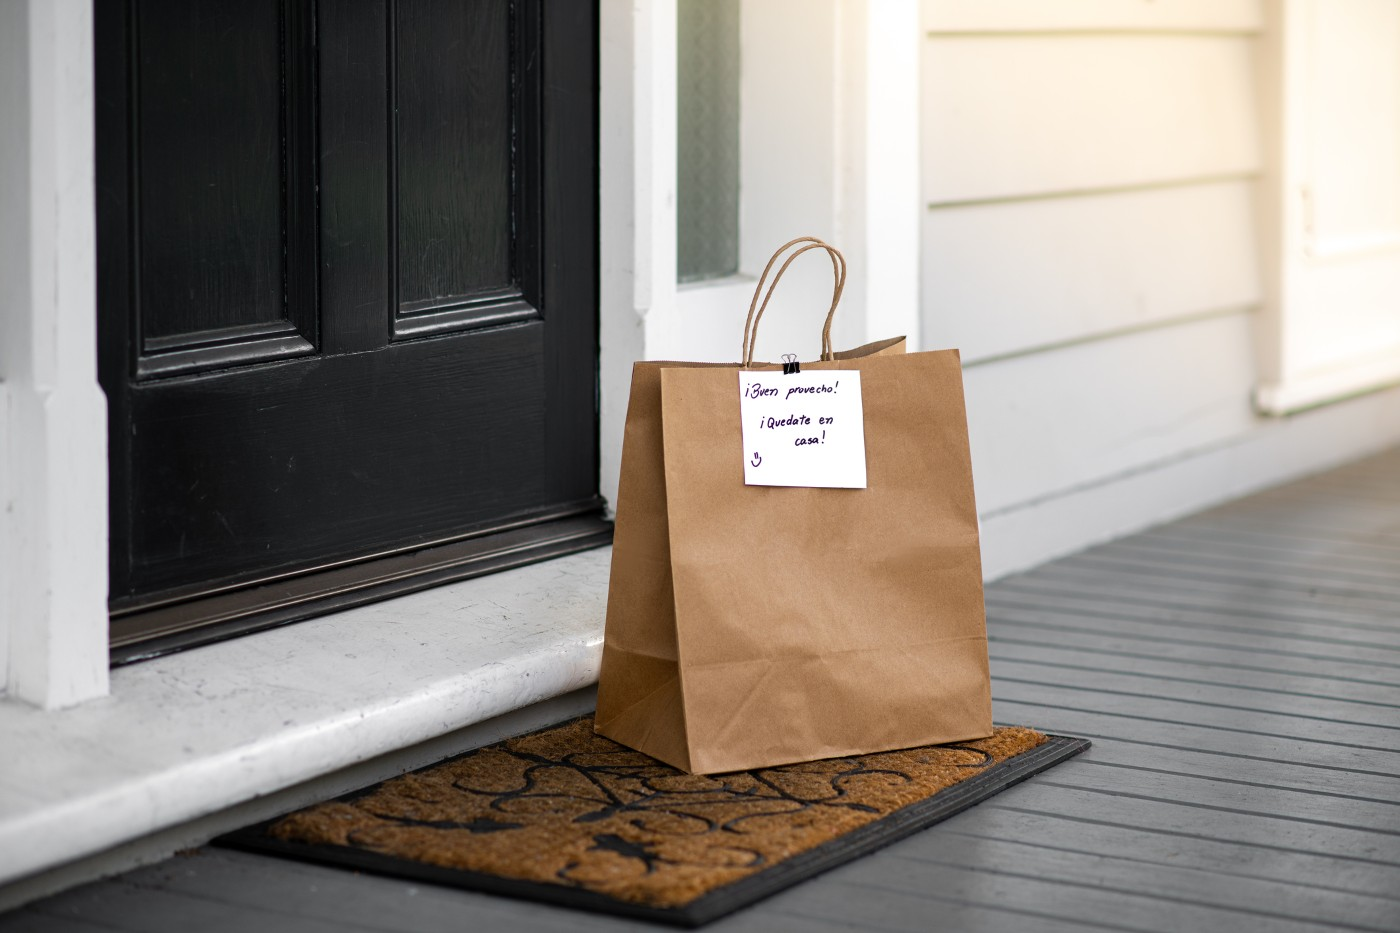 https://tickertapecdn.tdameritrade.com/assets/images/pages/md/Contactless food delivery: Digital transformation via COVID pandemic